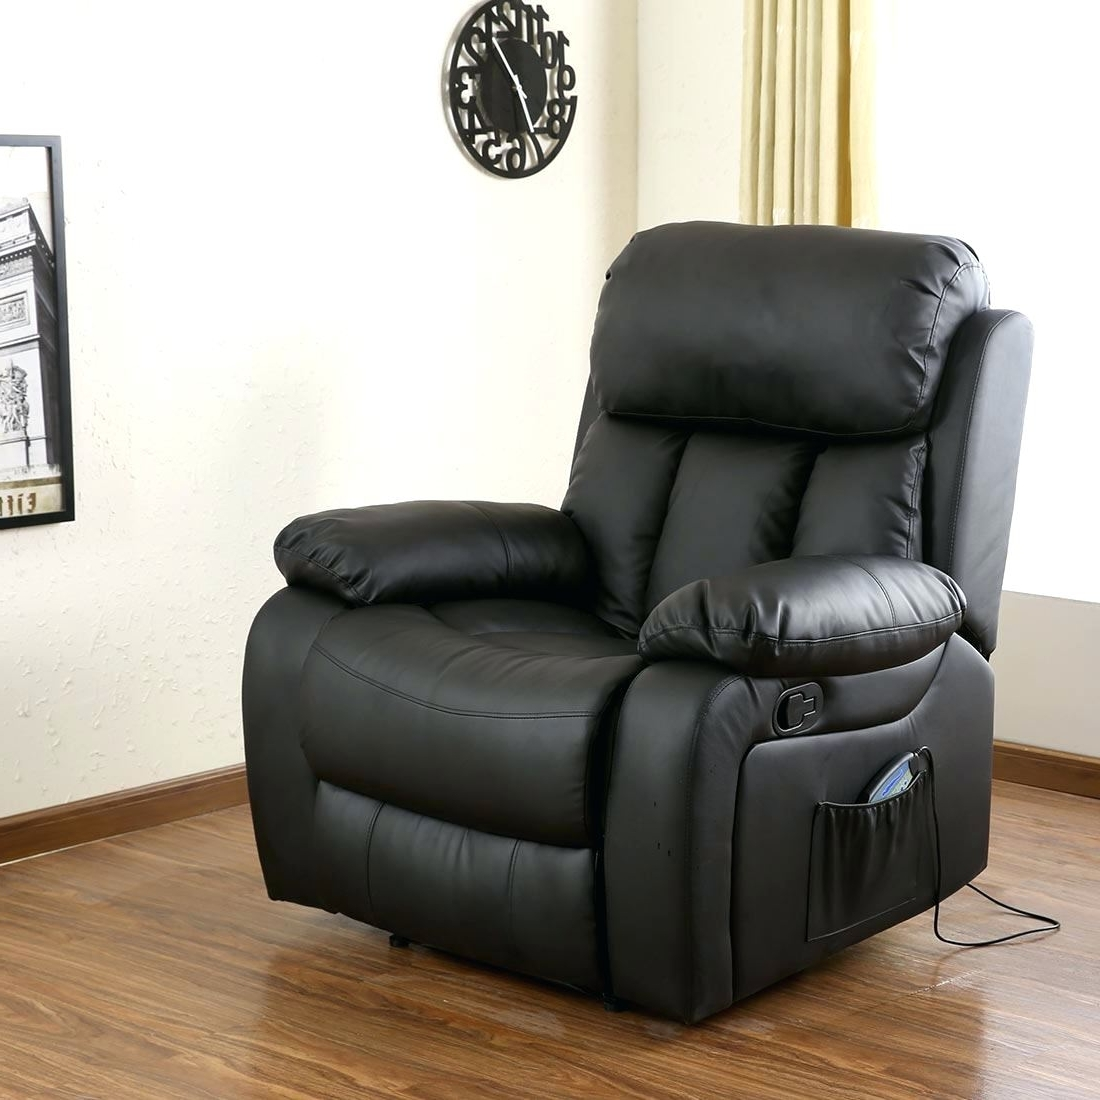 Varossa Chaise Lounge Recliner Chair Sofabeds For Popular Sofa Lounge Chair Black Accent Lounge Chair Sofa Bed Sofa Sleeper (View 8 of 15)